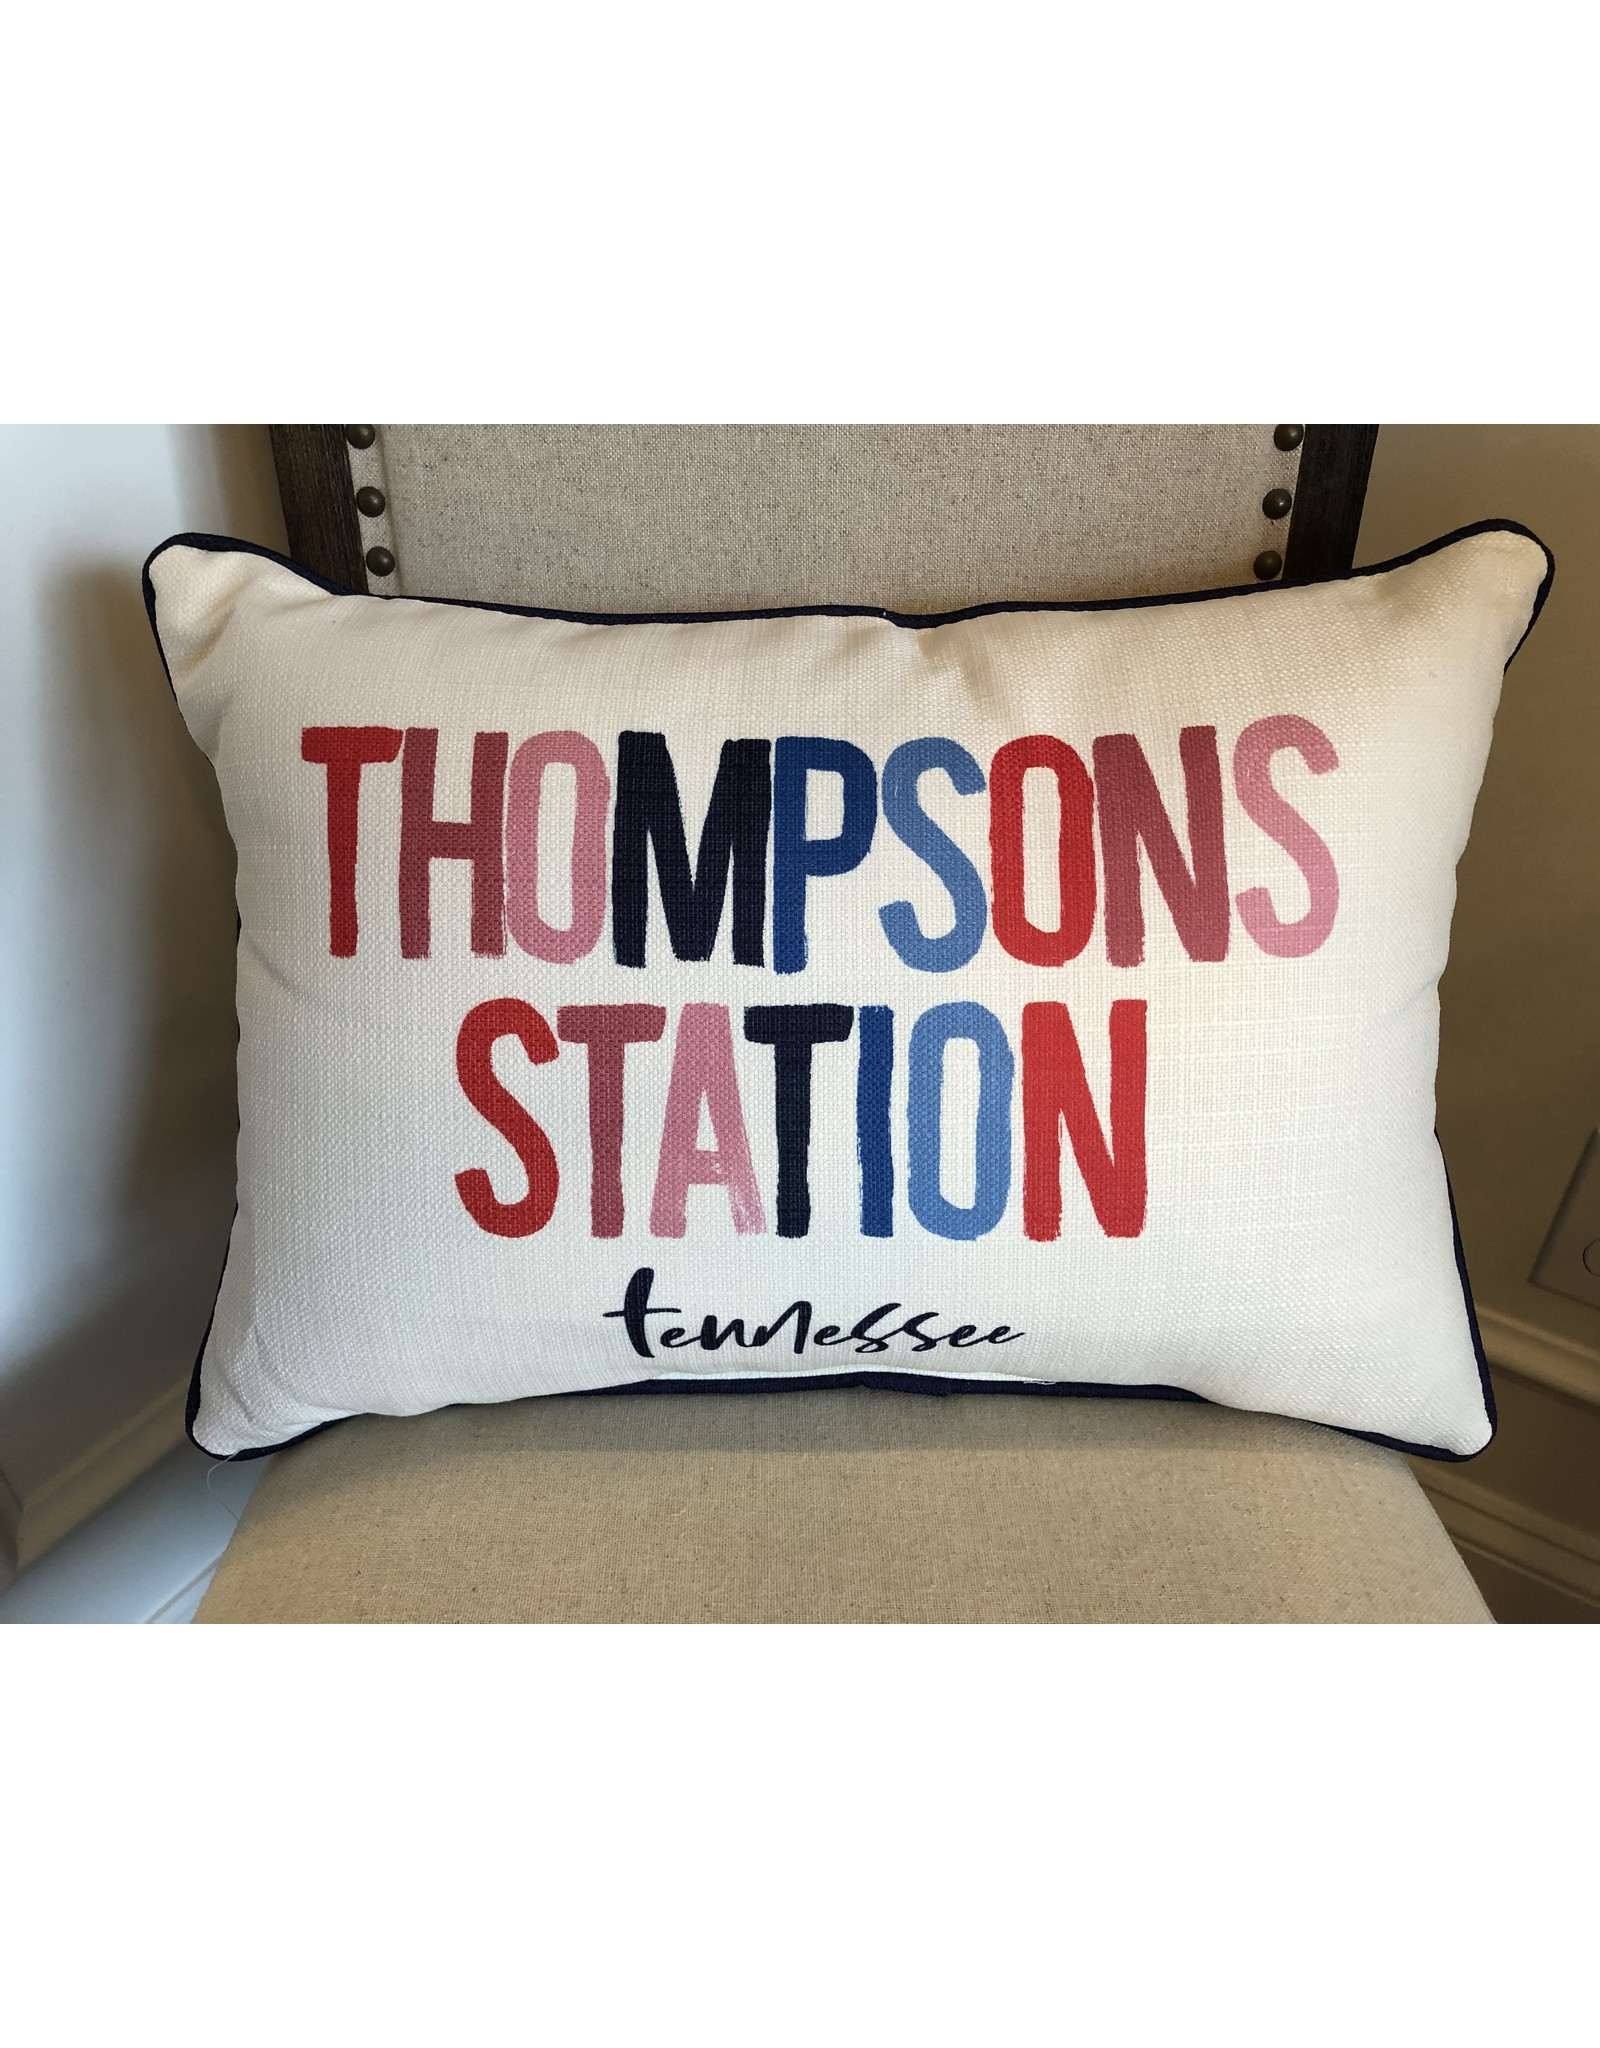 Little Birdie Thompsons Station Poster Pillow